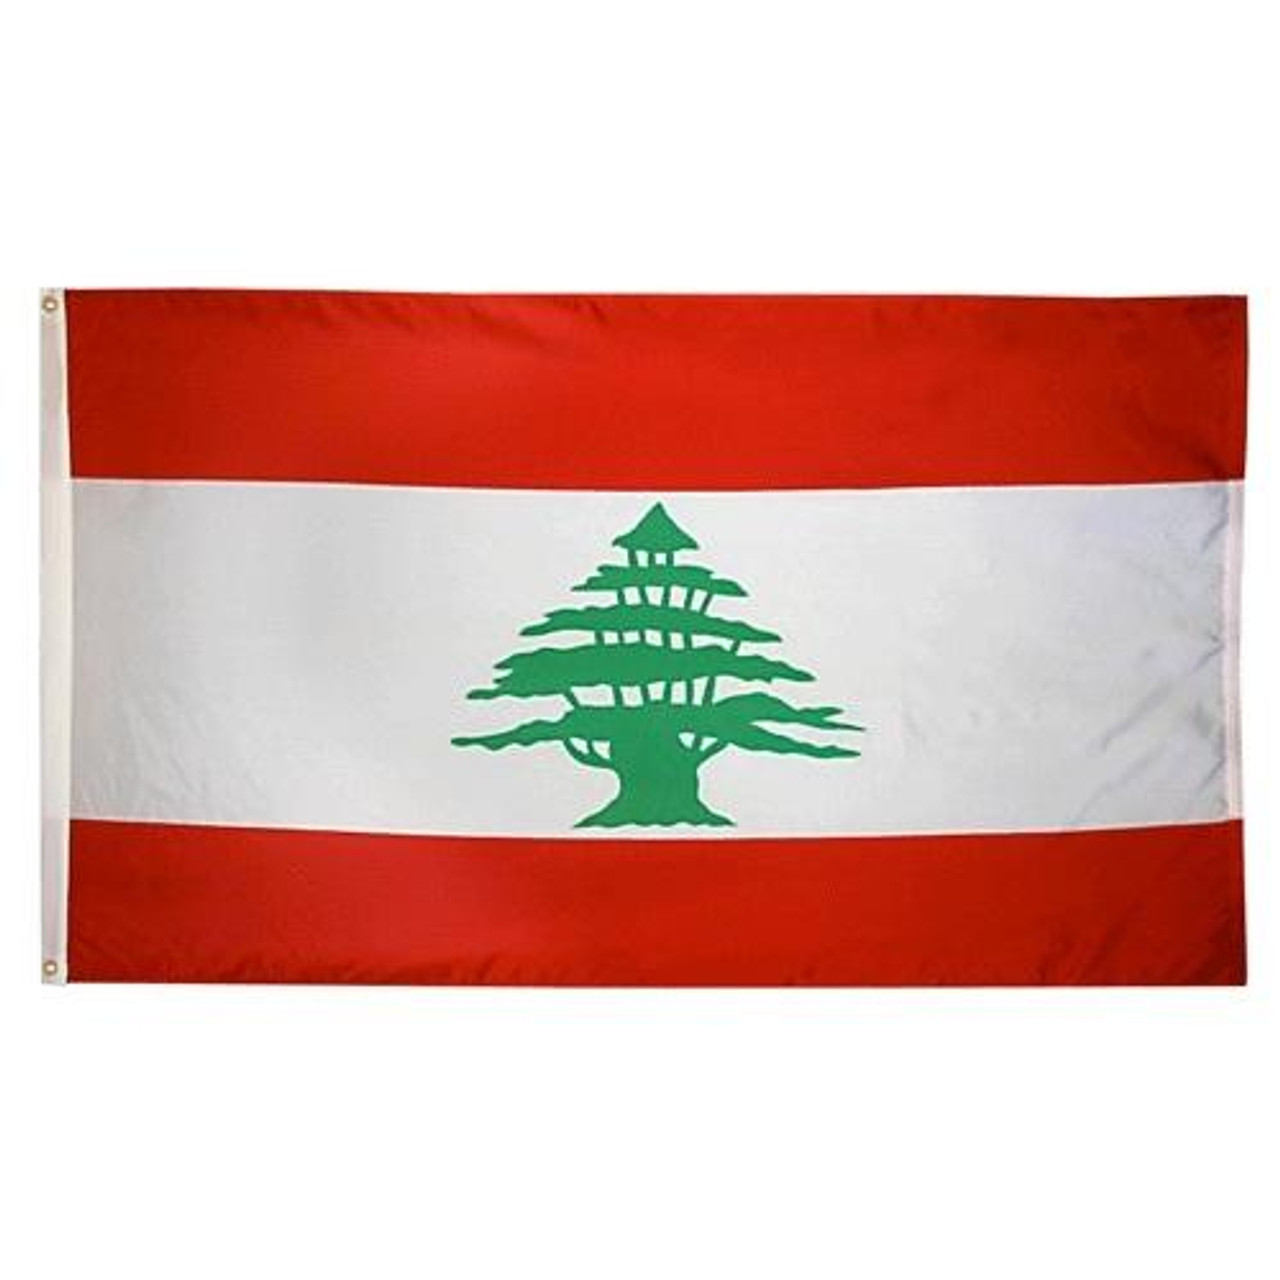 Lebanon flag has red top and bottom border with white field in center and a green Lebanon tree